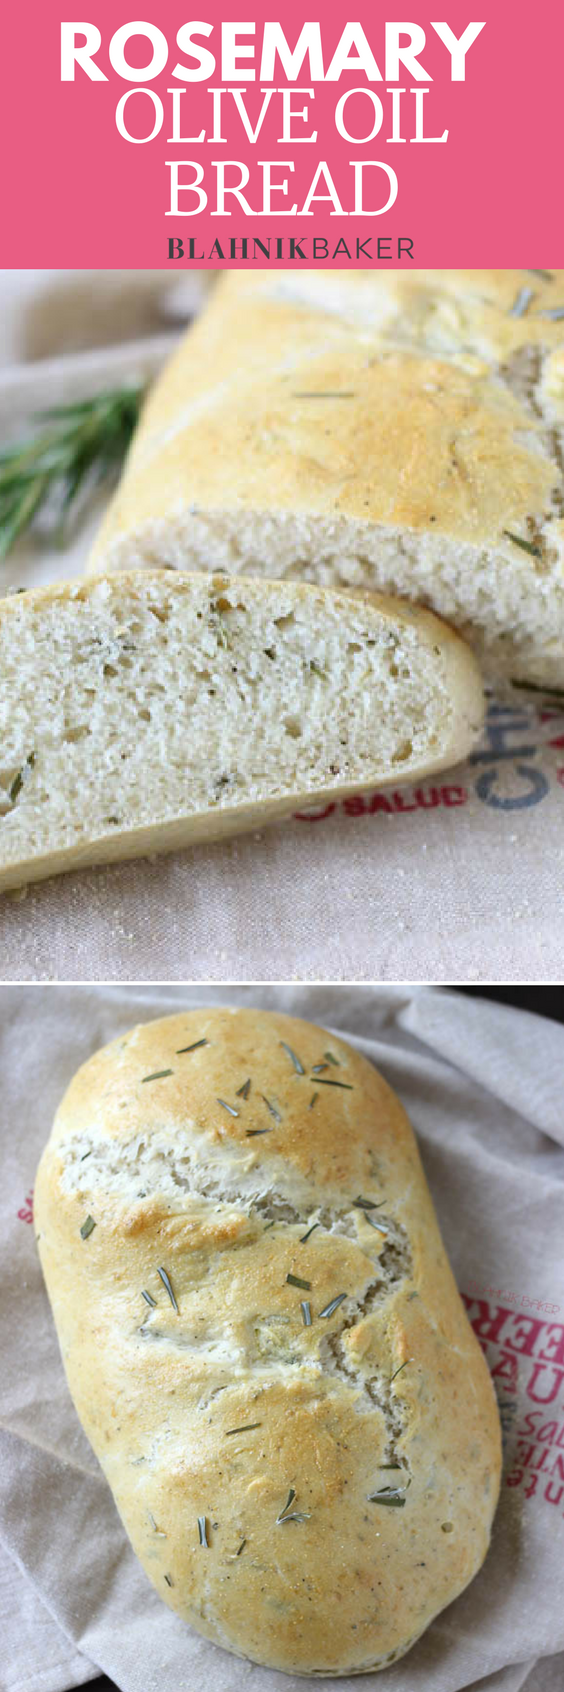 This classic rosemary olive oil bread recipe yields a very soft bread on the inside with a golden crunchy crust. Incredibly easy to make too.